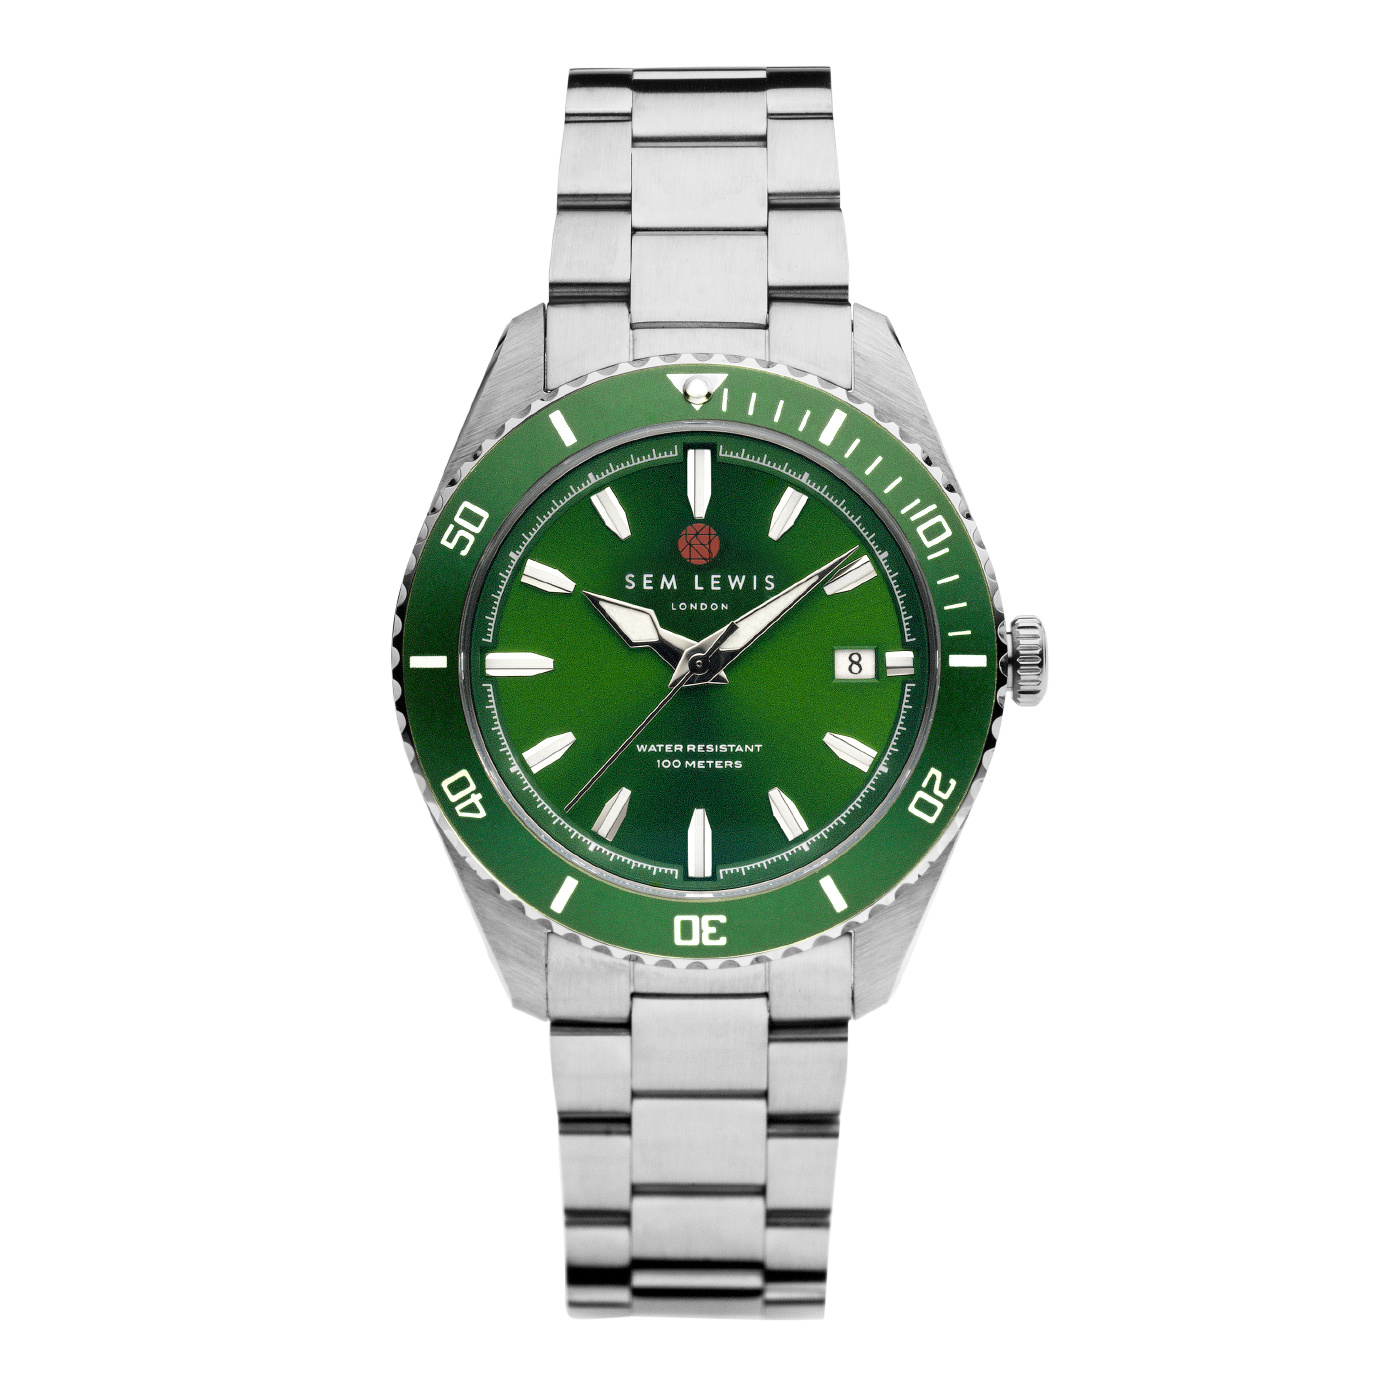 Sem Lewis Lundy Island Diver watch silver colored and green